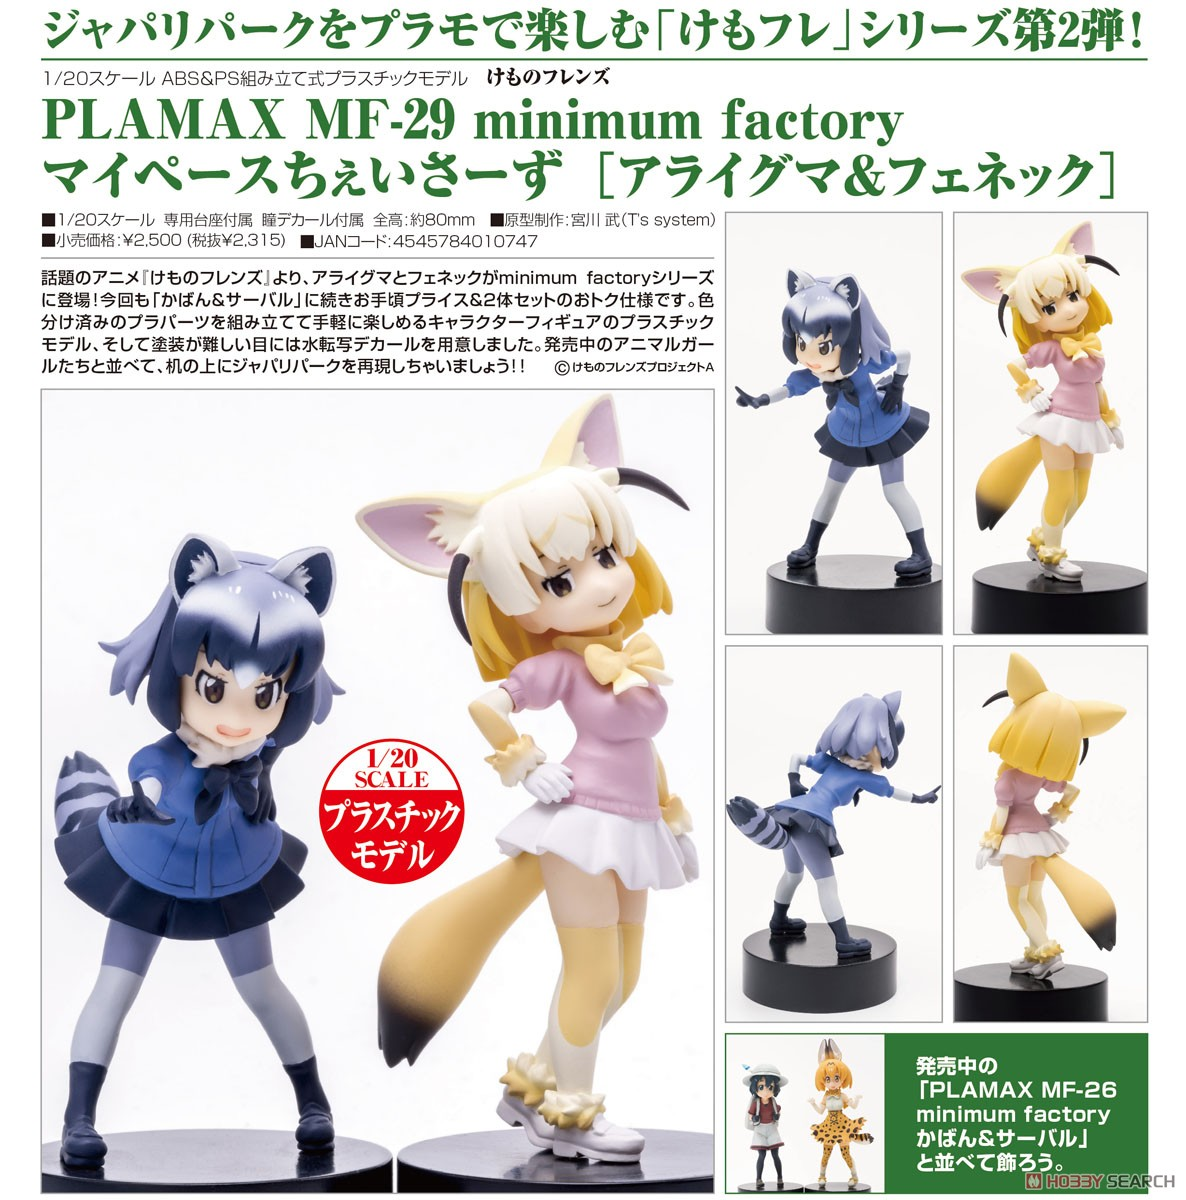 Plamax MF-29: Minimum Factory My Pace Chasers/Common Raccoon & Fennec